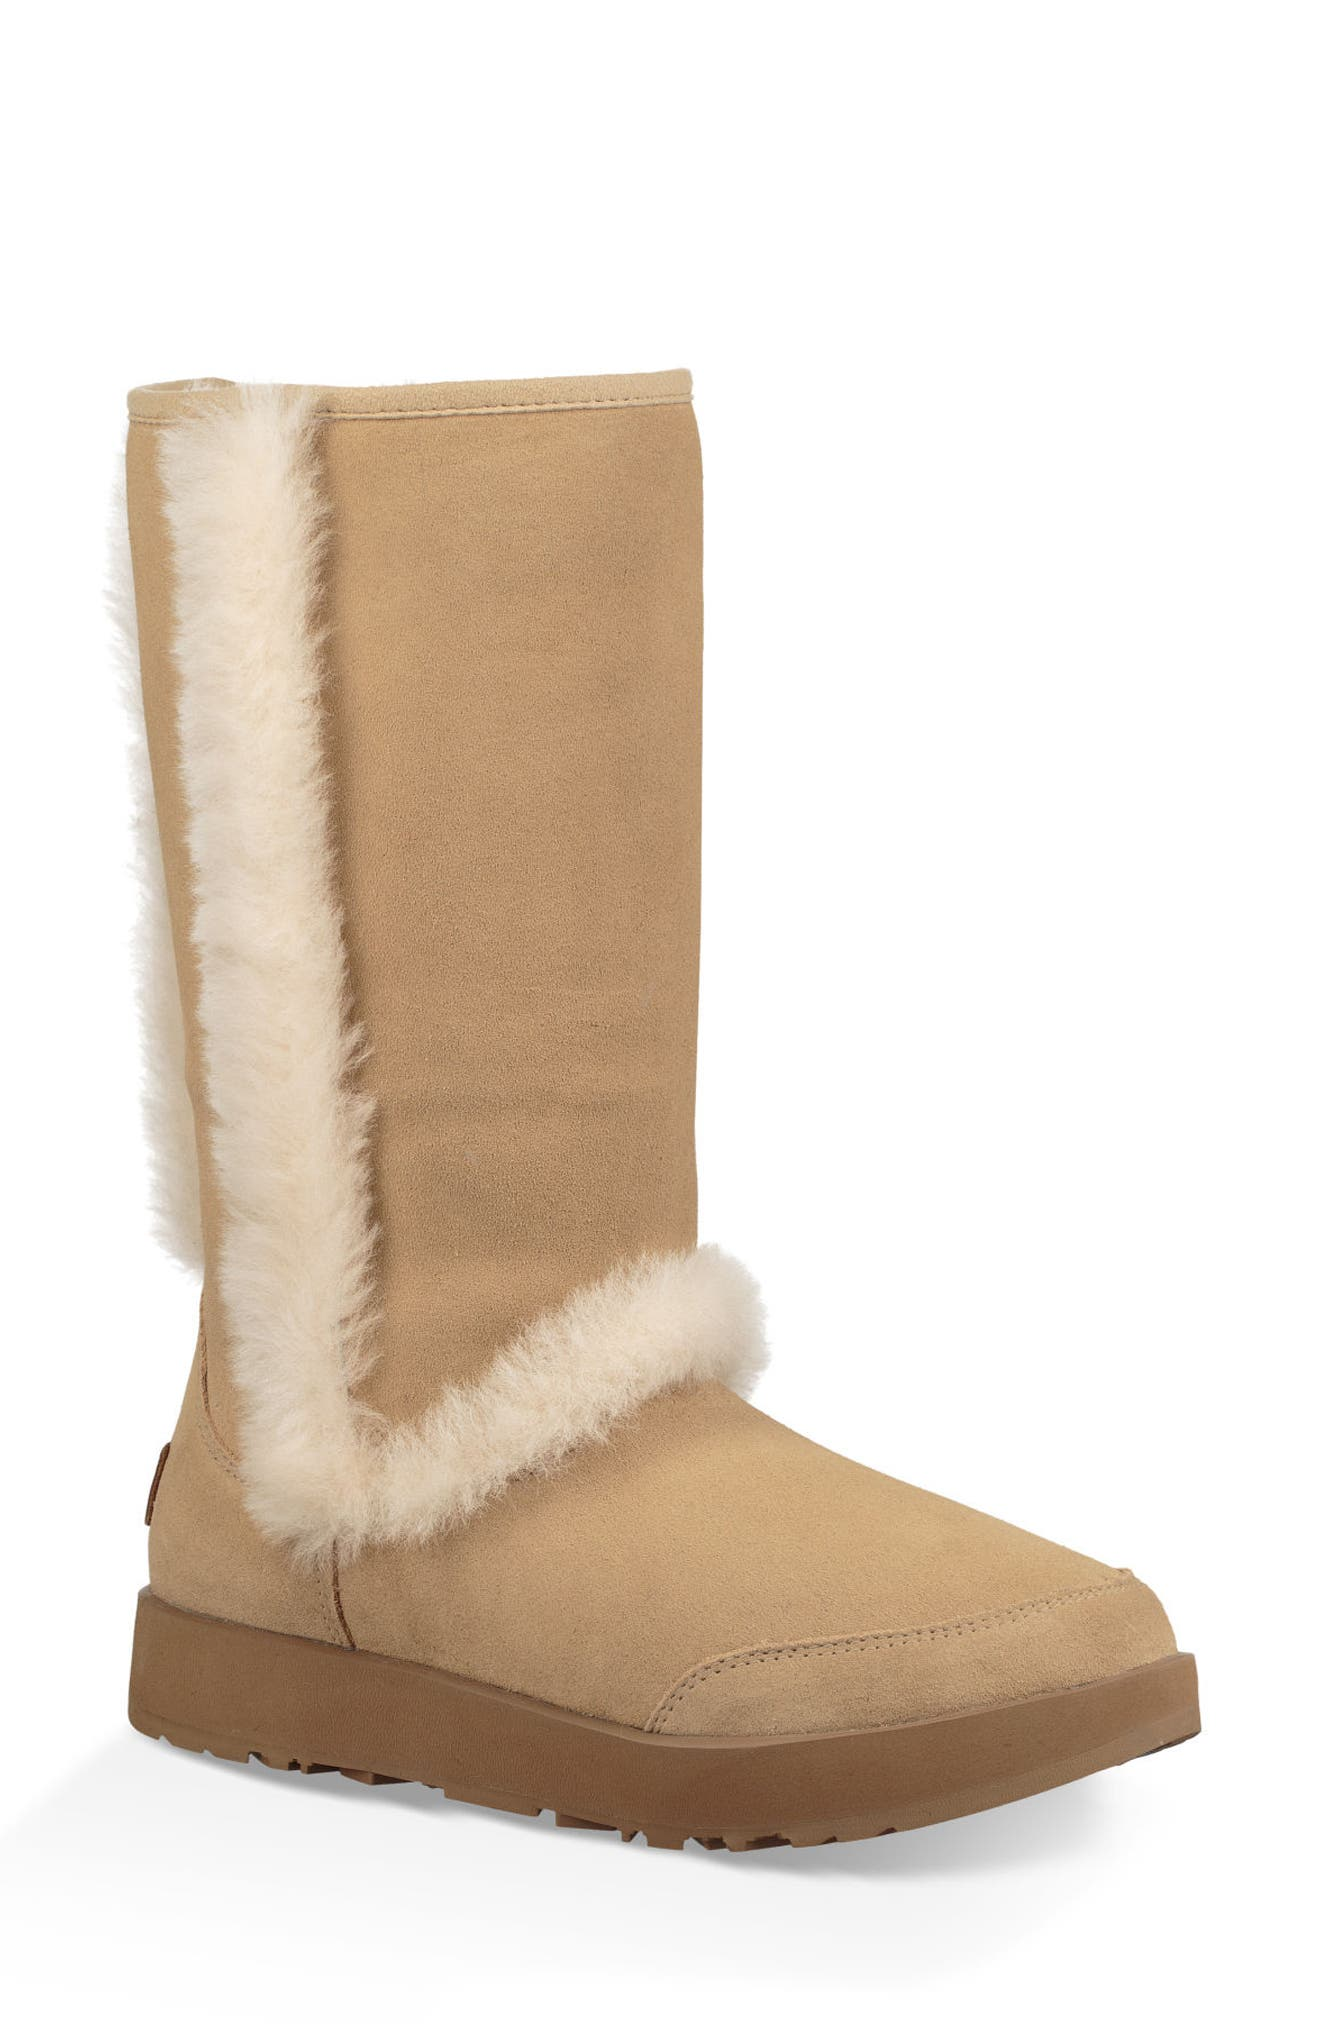 Sundance Genuine Shearling Waterproof Boot,                         Main,                         color, Sand Suede